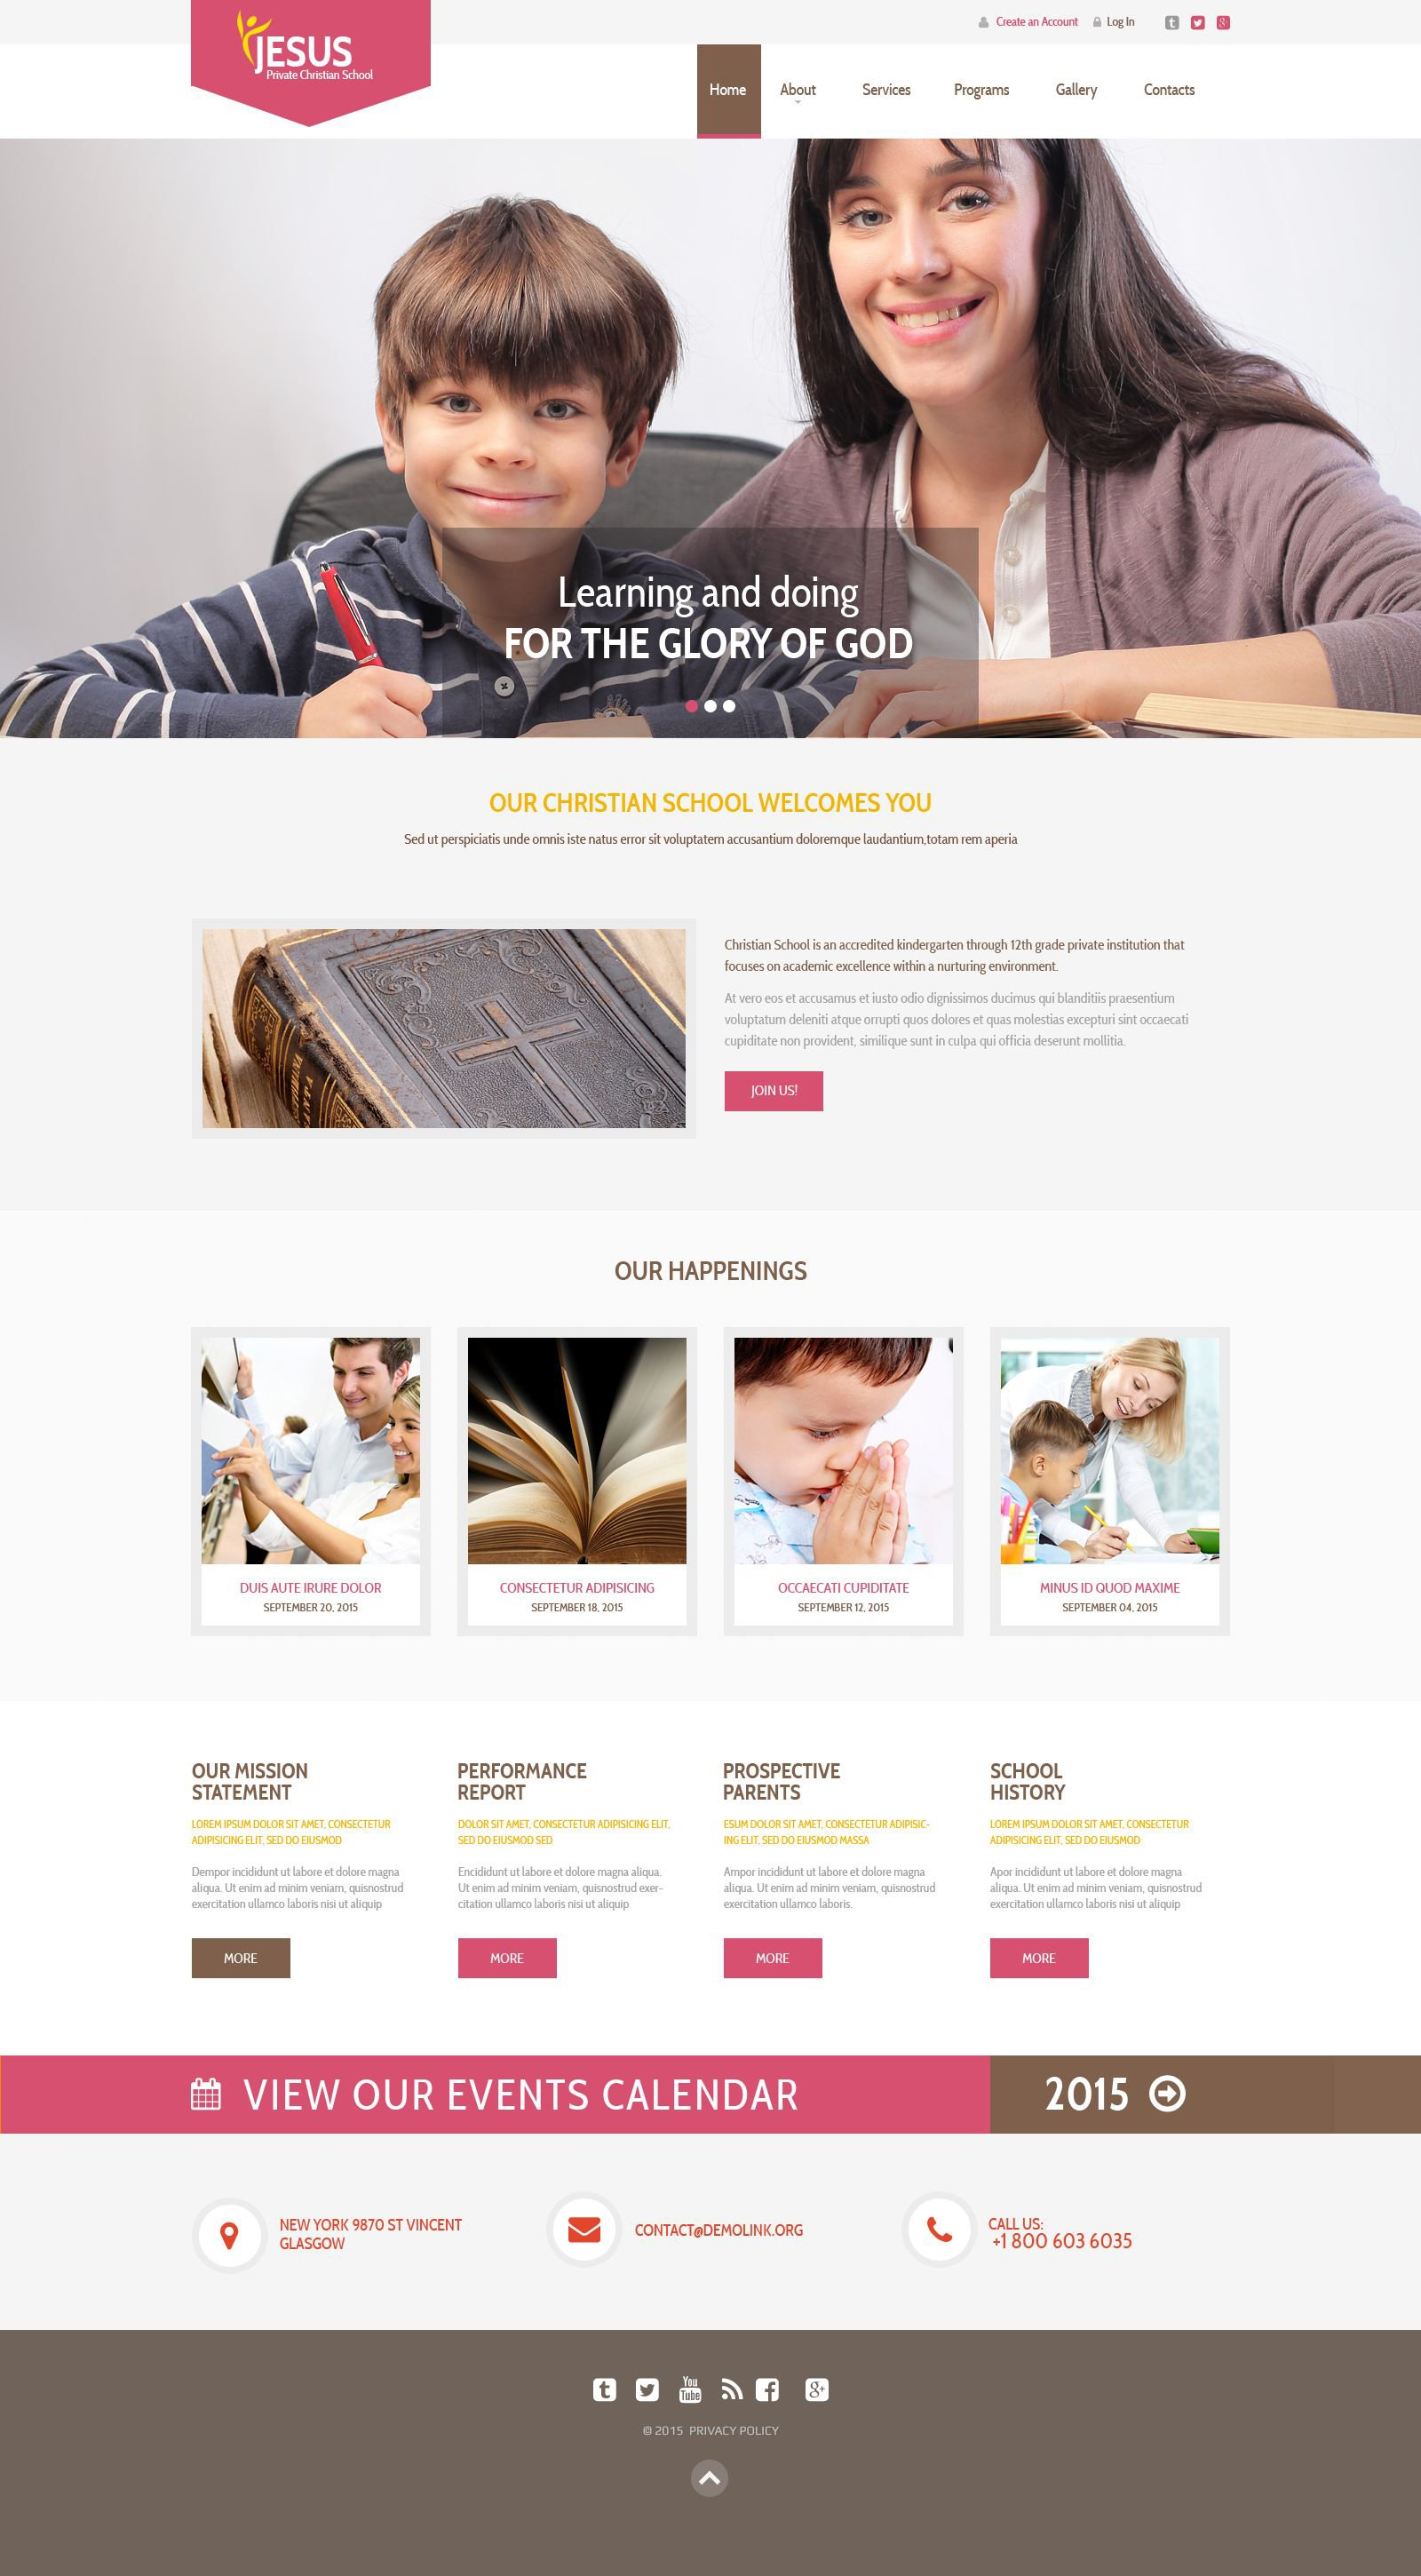 The Jesus Private Christian School Responsive Javascript Animated Design 53867, one of the best website templates of its kind (religious, most popular), also known as Jesus private Christian school website template, education center website template, e-learning website template, study website template, learn website template, training website template, consulting website template, tutorial website template, distance website template, express website template, learning and related with Jesus private Christian school, education center, e-learning, study, learn, training, consulting, tutorial, distance, express, learning, etc.